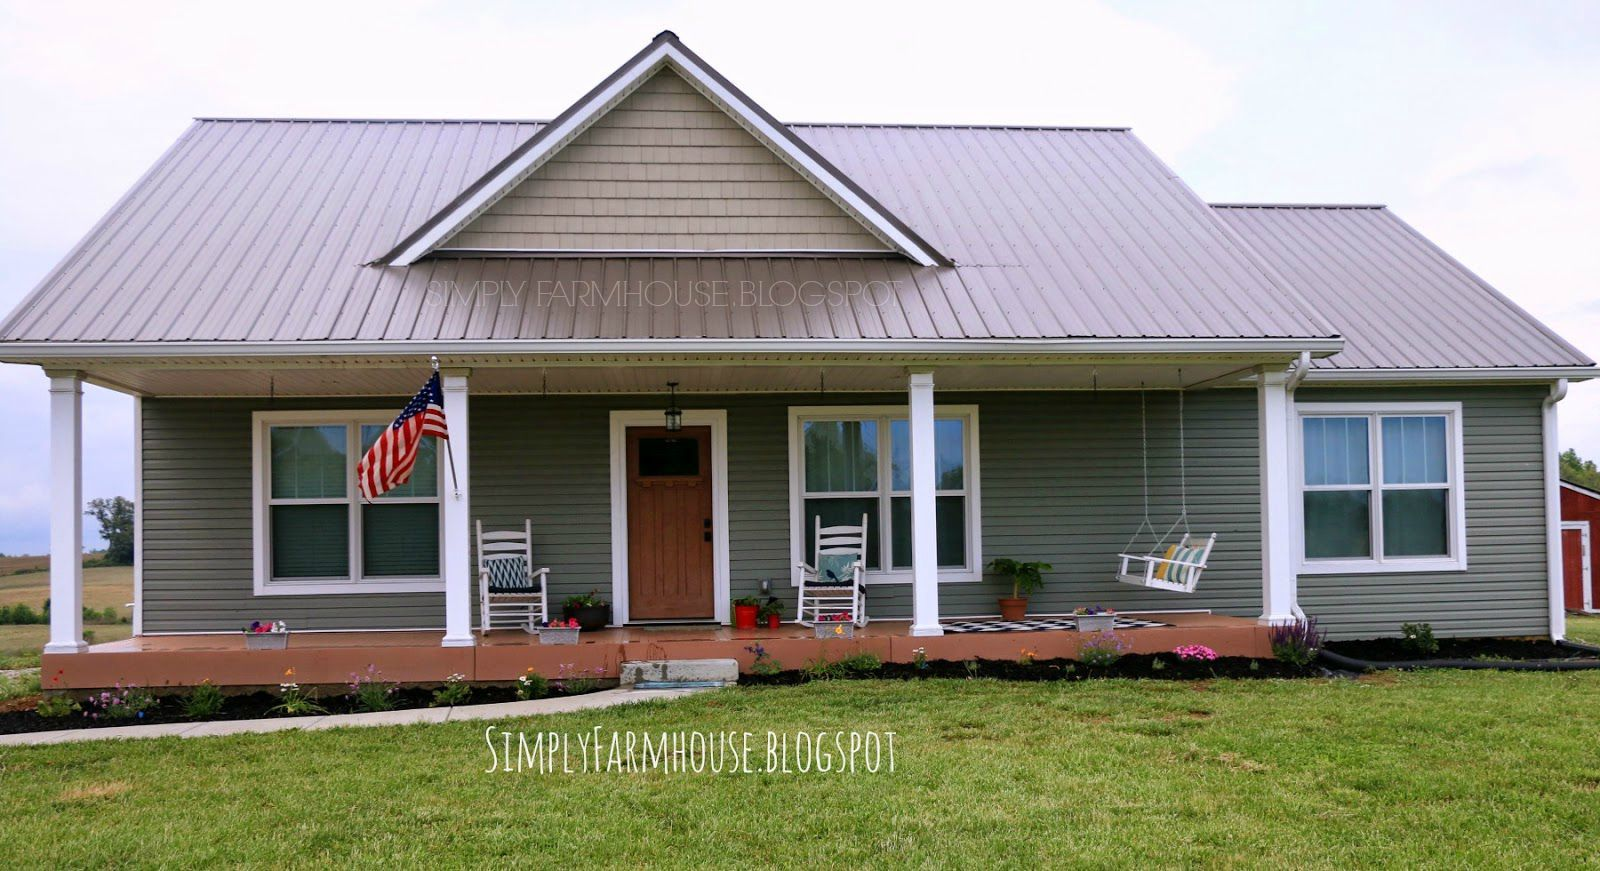 Adorable Farmhouse Plan Simple Open Plan Affordable 3 Bedrooms 2 Bathrooms 1500 Sq Foot Cost 395 House Plans Farmhouse Metal House Plans Farmhouse House